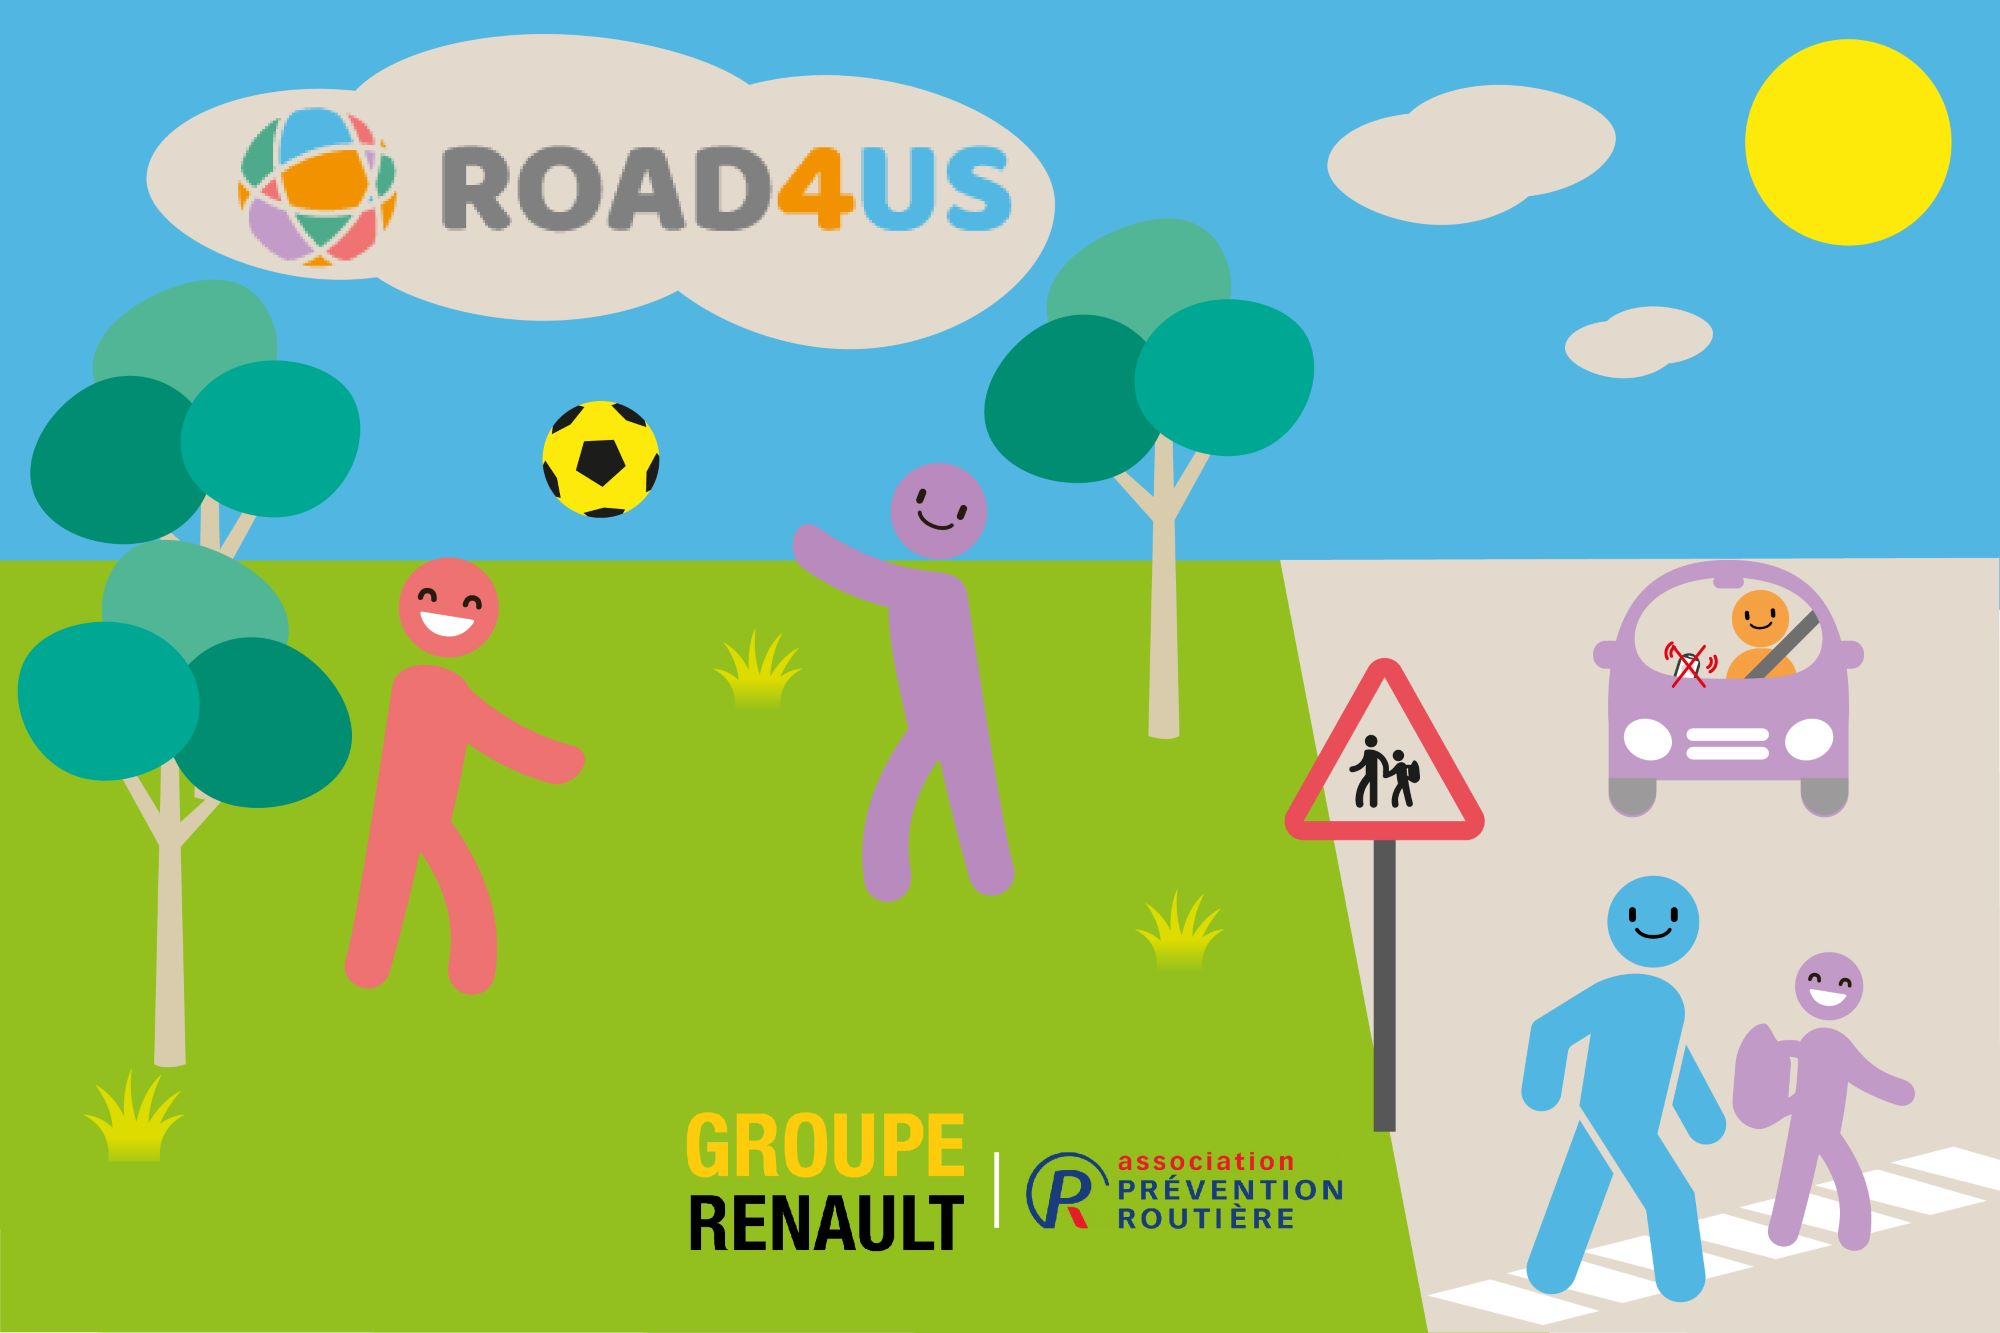 Road4Us - Groupe Renault